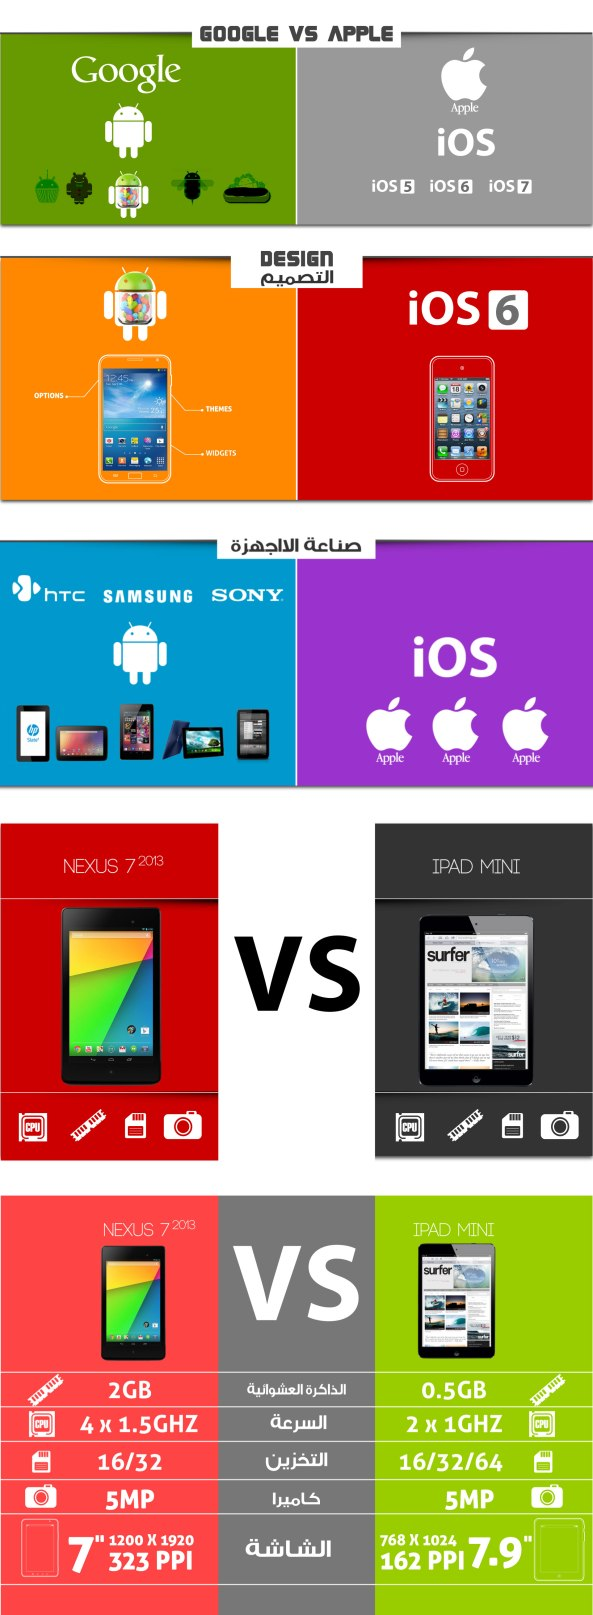 ايباد ميني vs نيكسوس 7 - nexus 7 vs Ipad mini